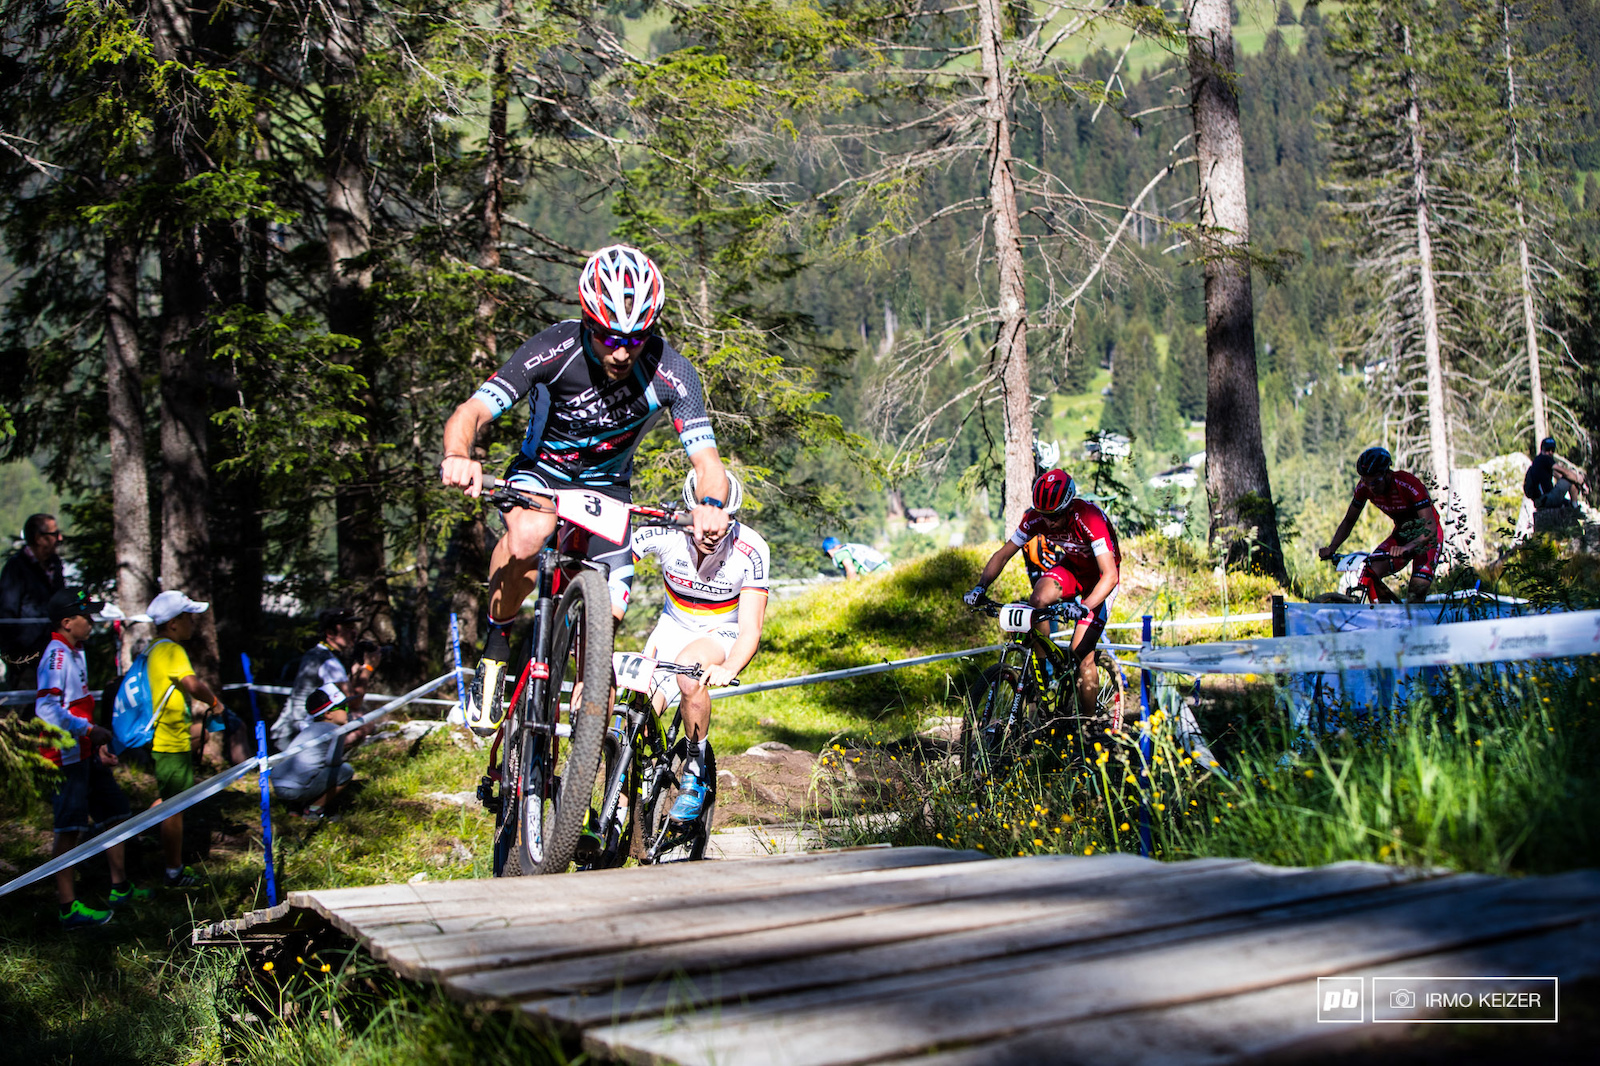 Romain Seigle Georg Egger and Andri Frischknecht in pursuit of the race leaders.